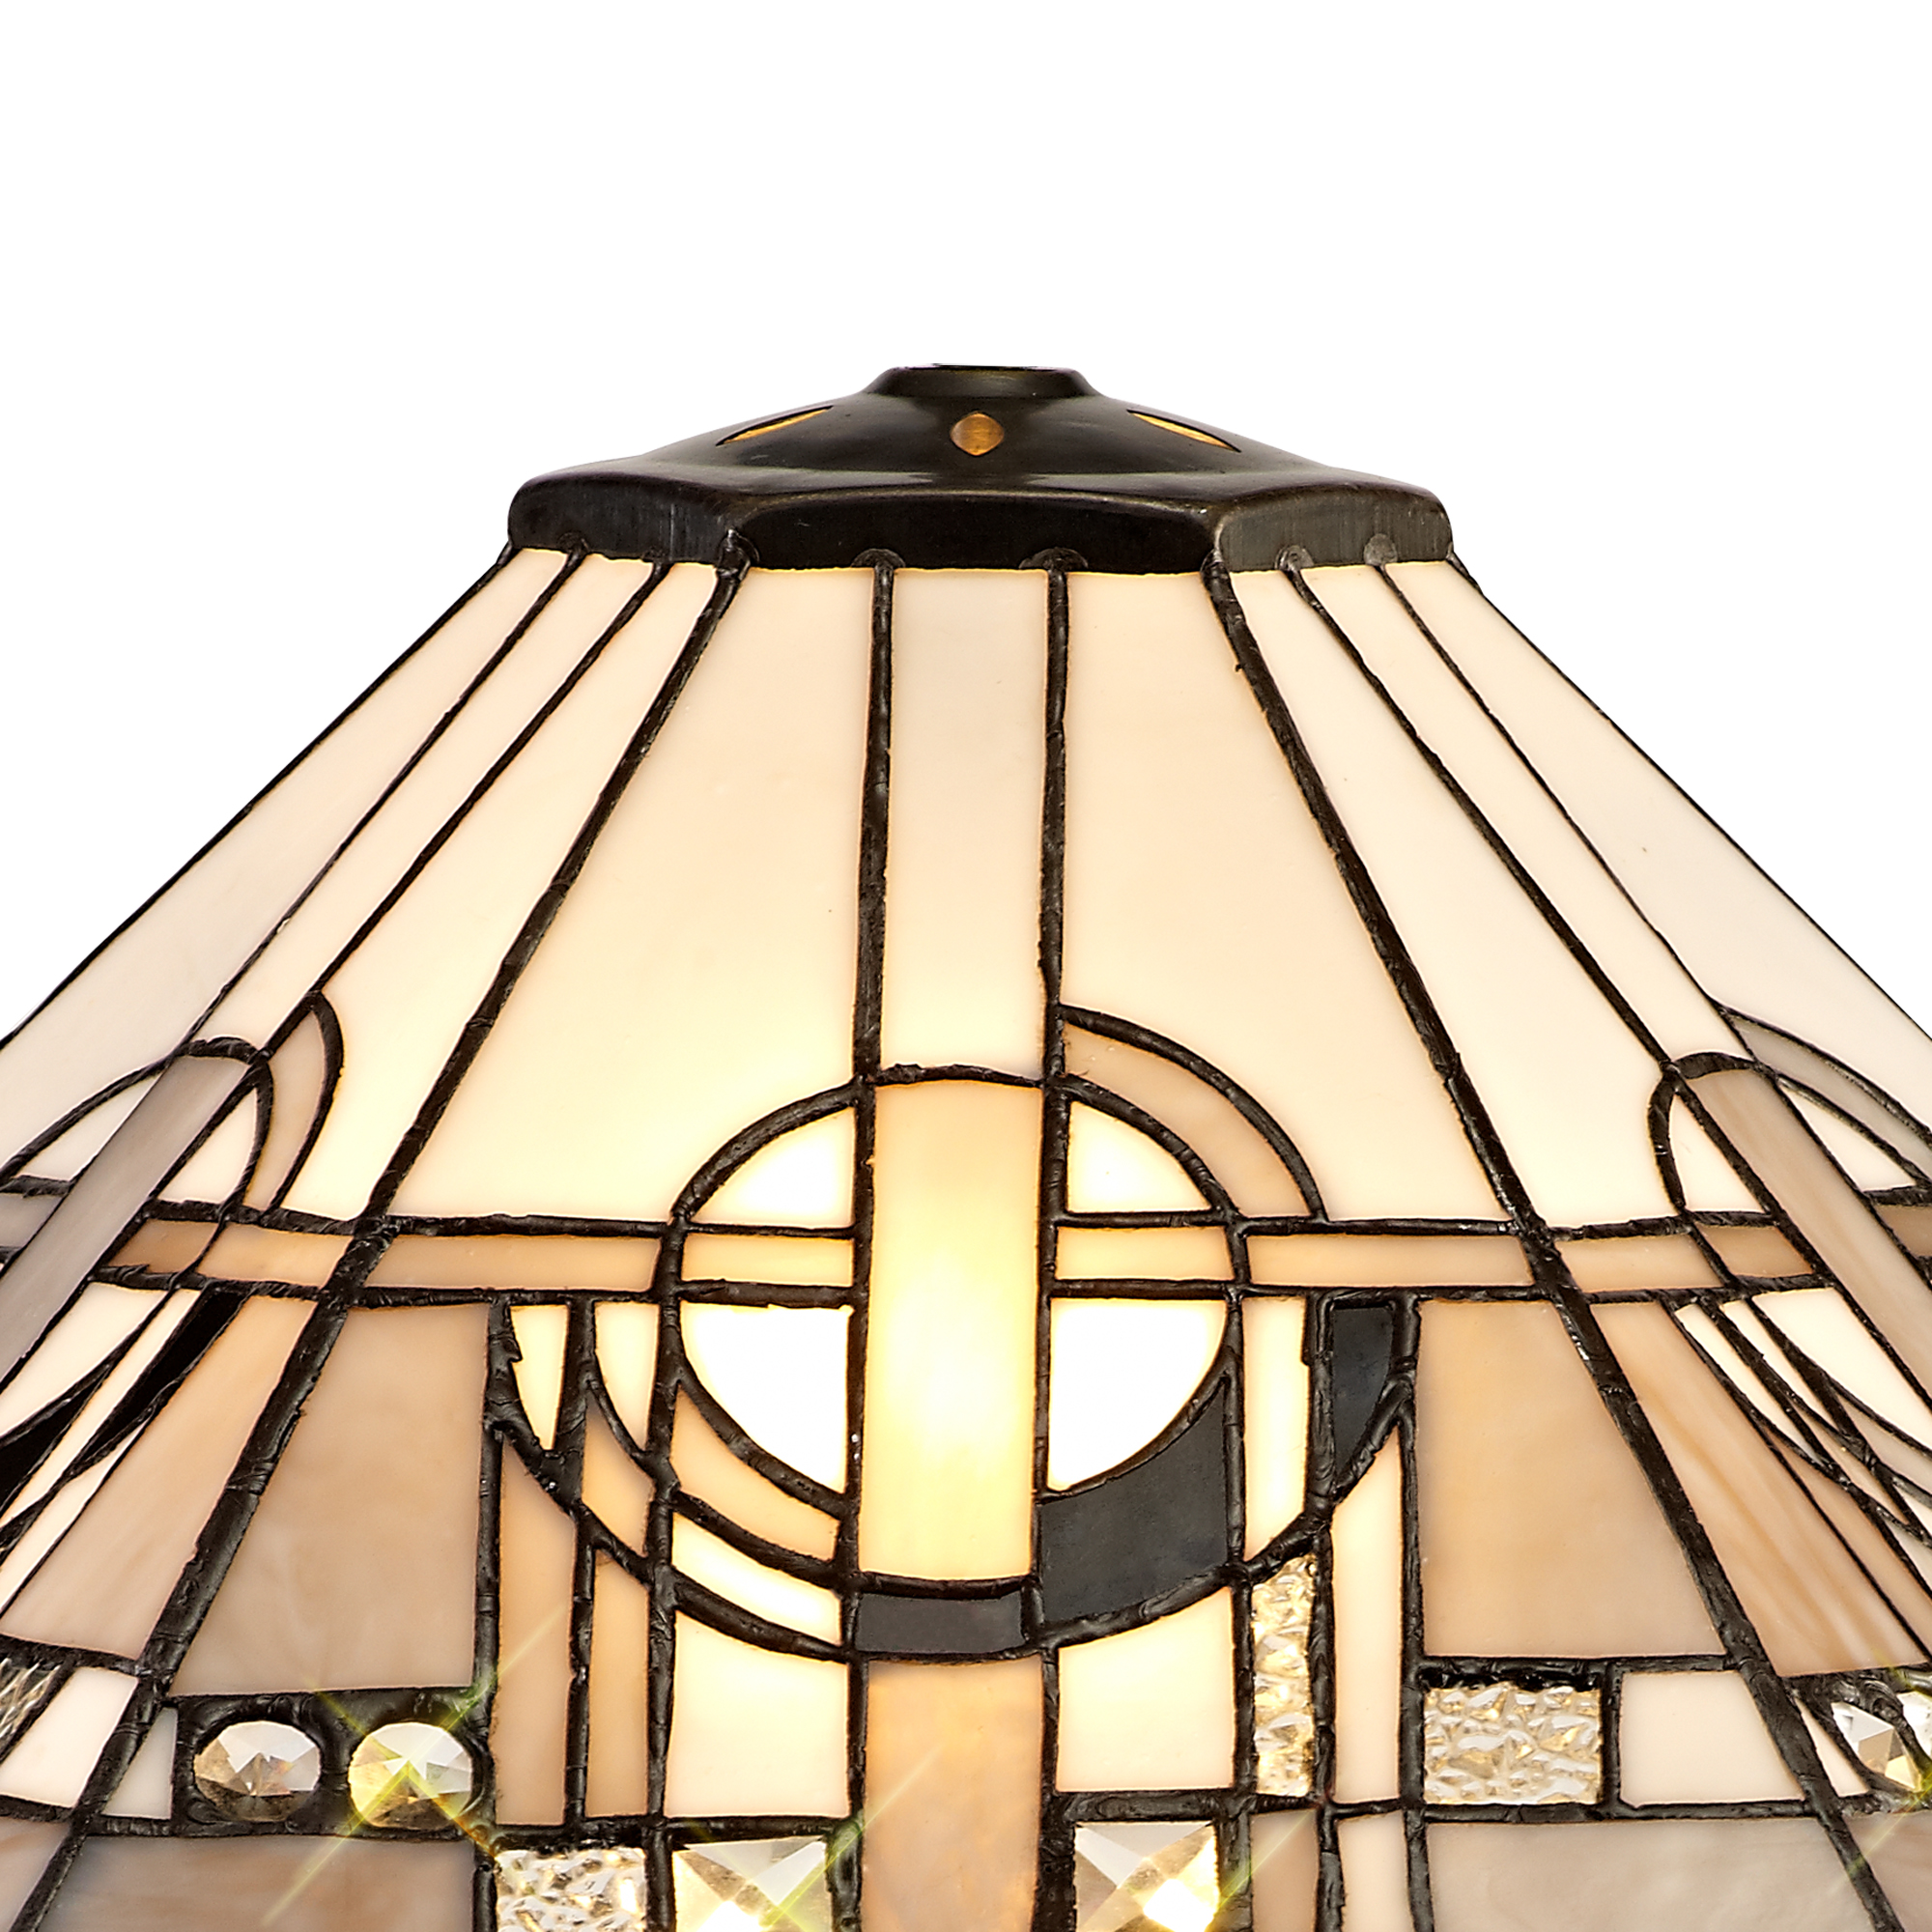 Tiffany 40cm Shade Only Suitable For Pendant/Ceiling/Table Lamp, White/Grey/Black/Clear Crystal